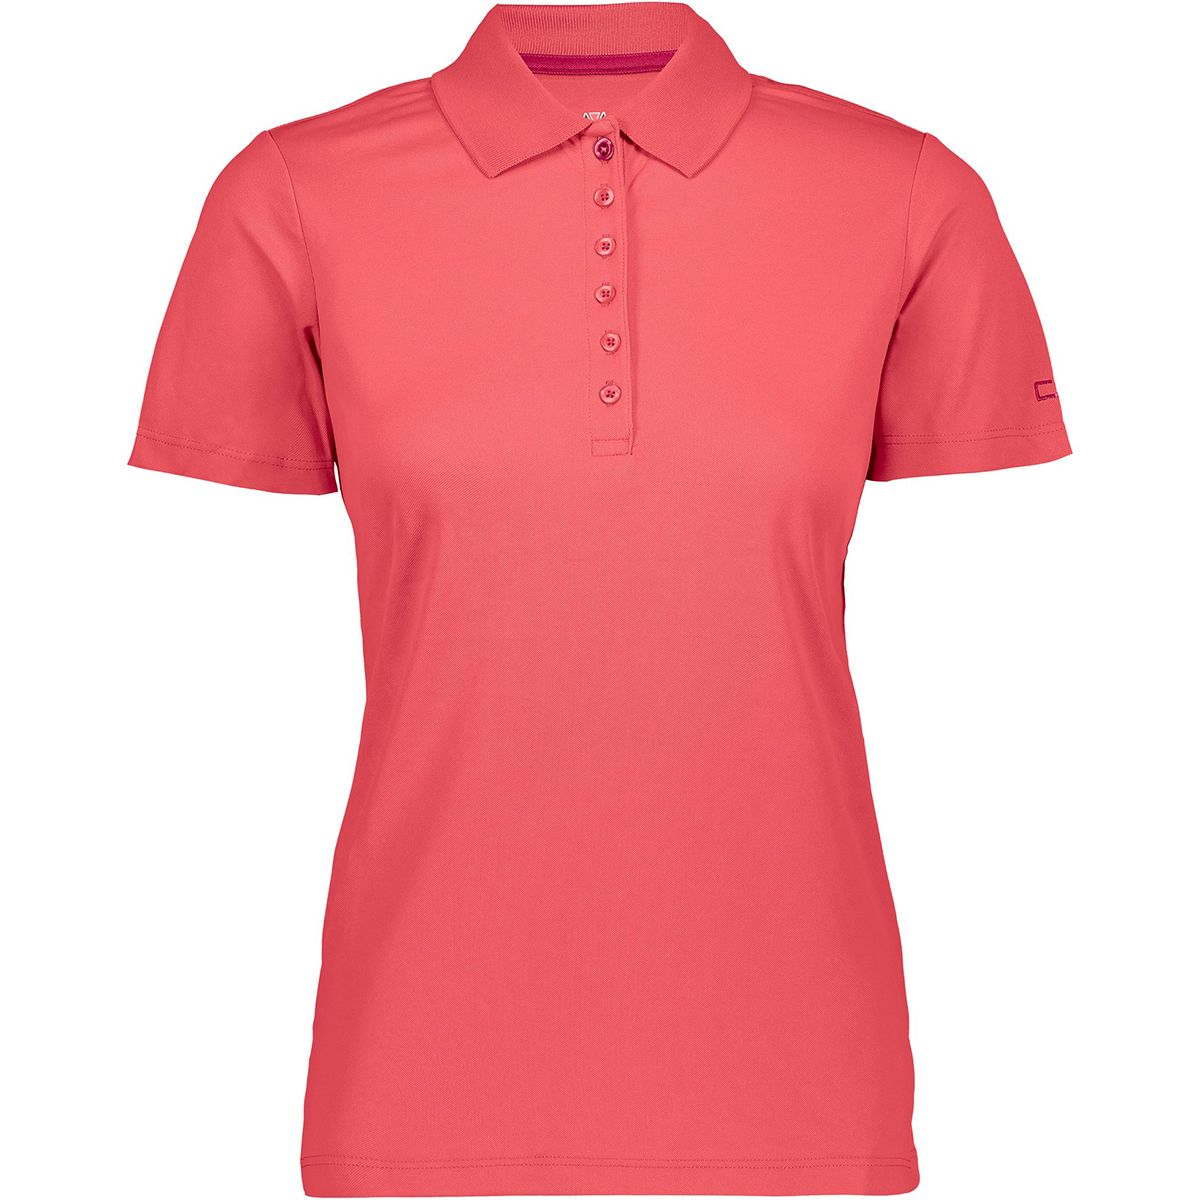 CMP Damen Polo T-Shirt (Größe XL, Pink) | T-Shirts Funktion > Damen